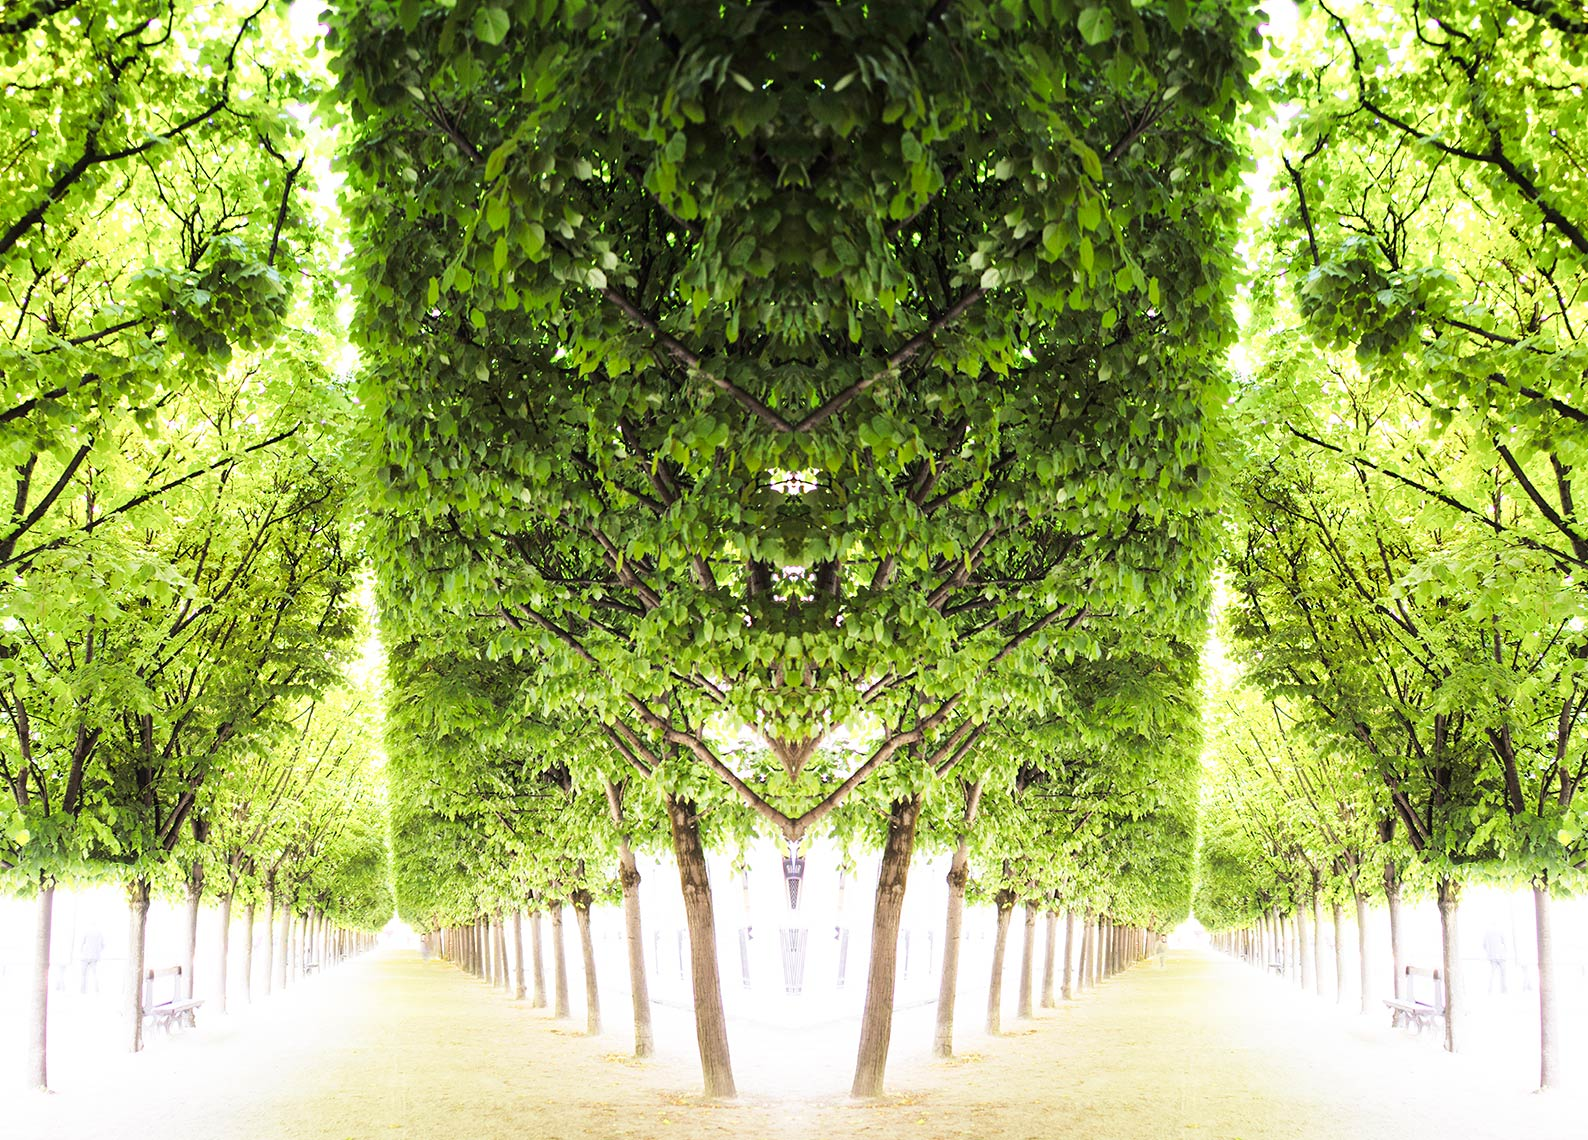 Trees-IV-Palais-Royale